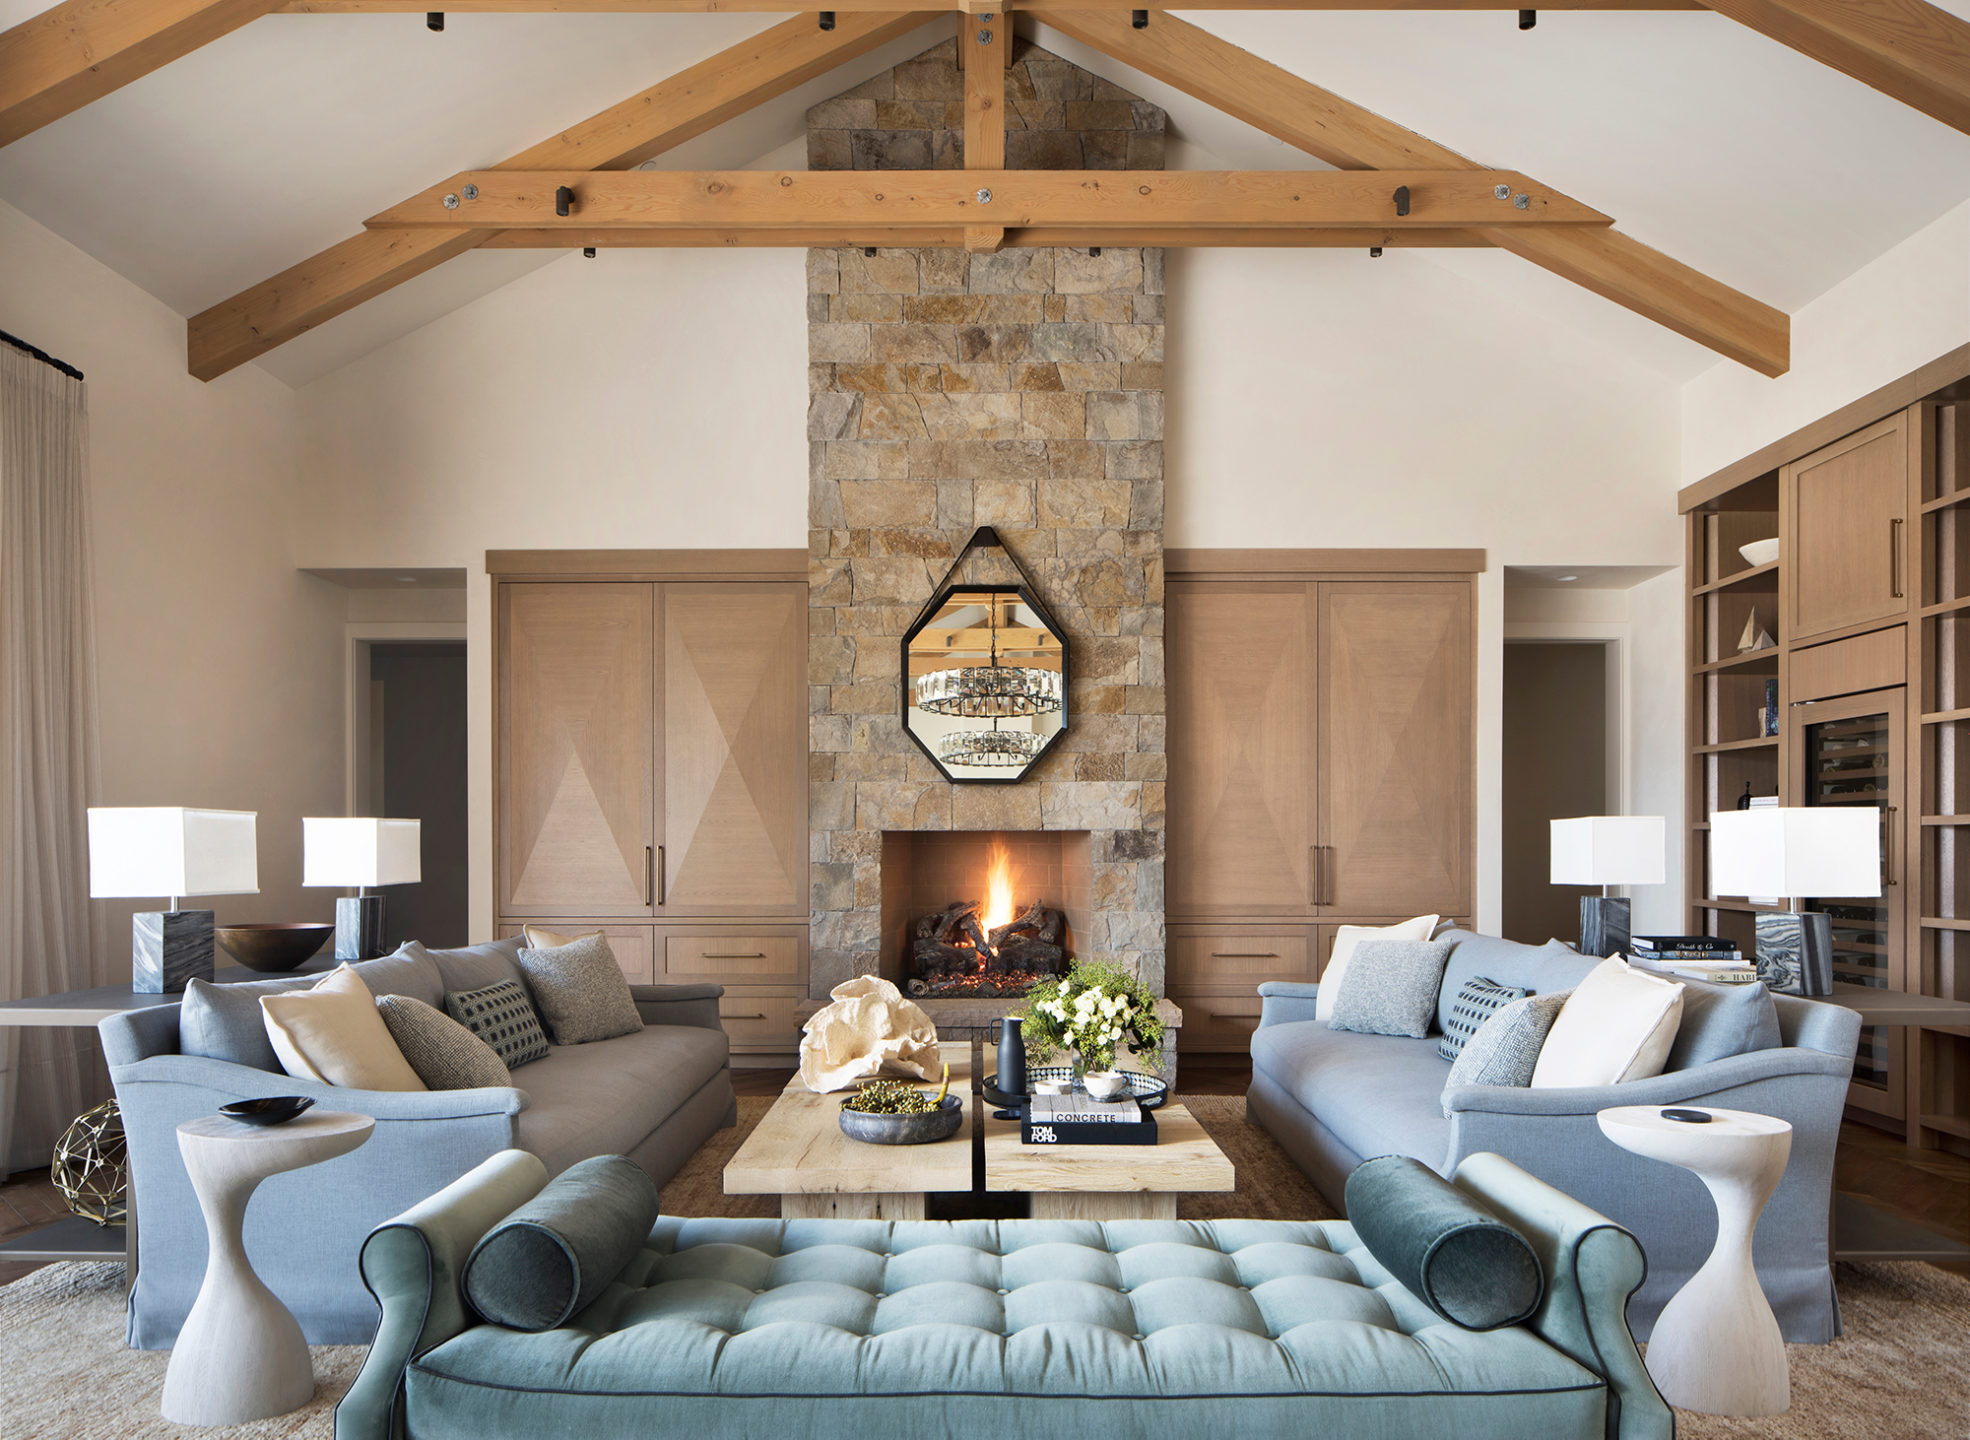 Jennifer_robins_interiors_projects_st_helena_IIII_Conn_05_HR_living_room_LR_Fireplace_couch